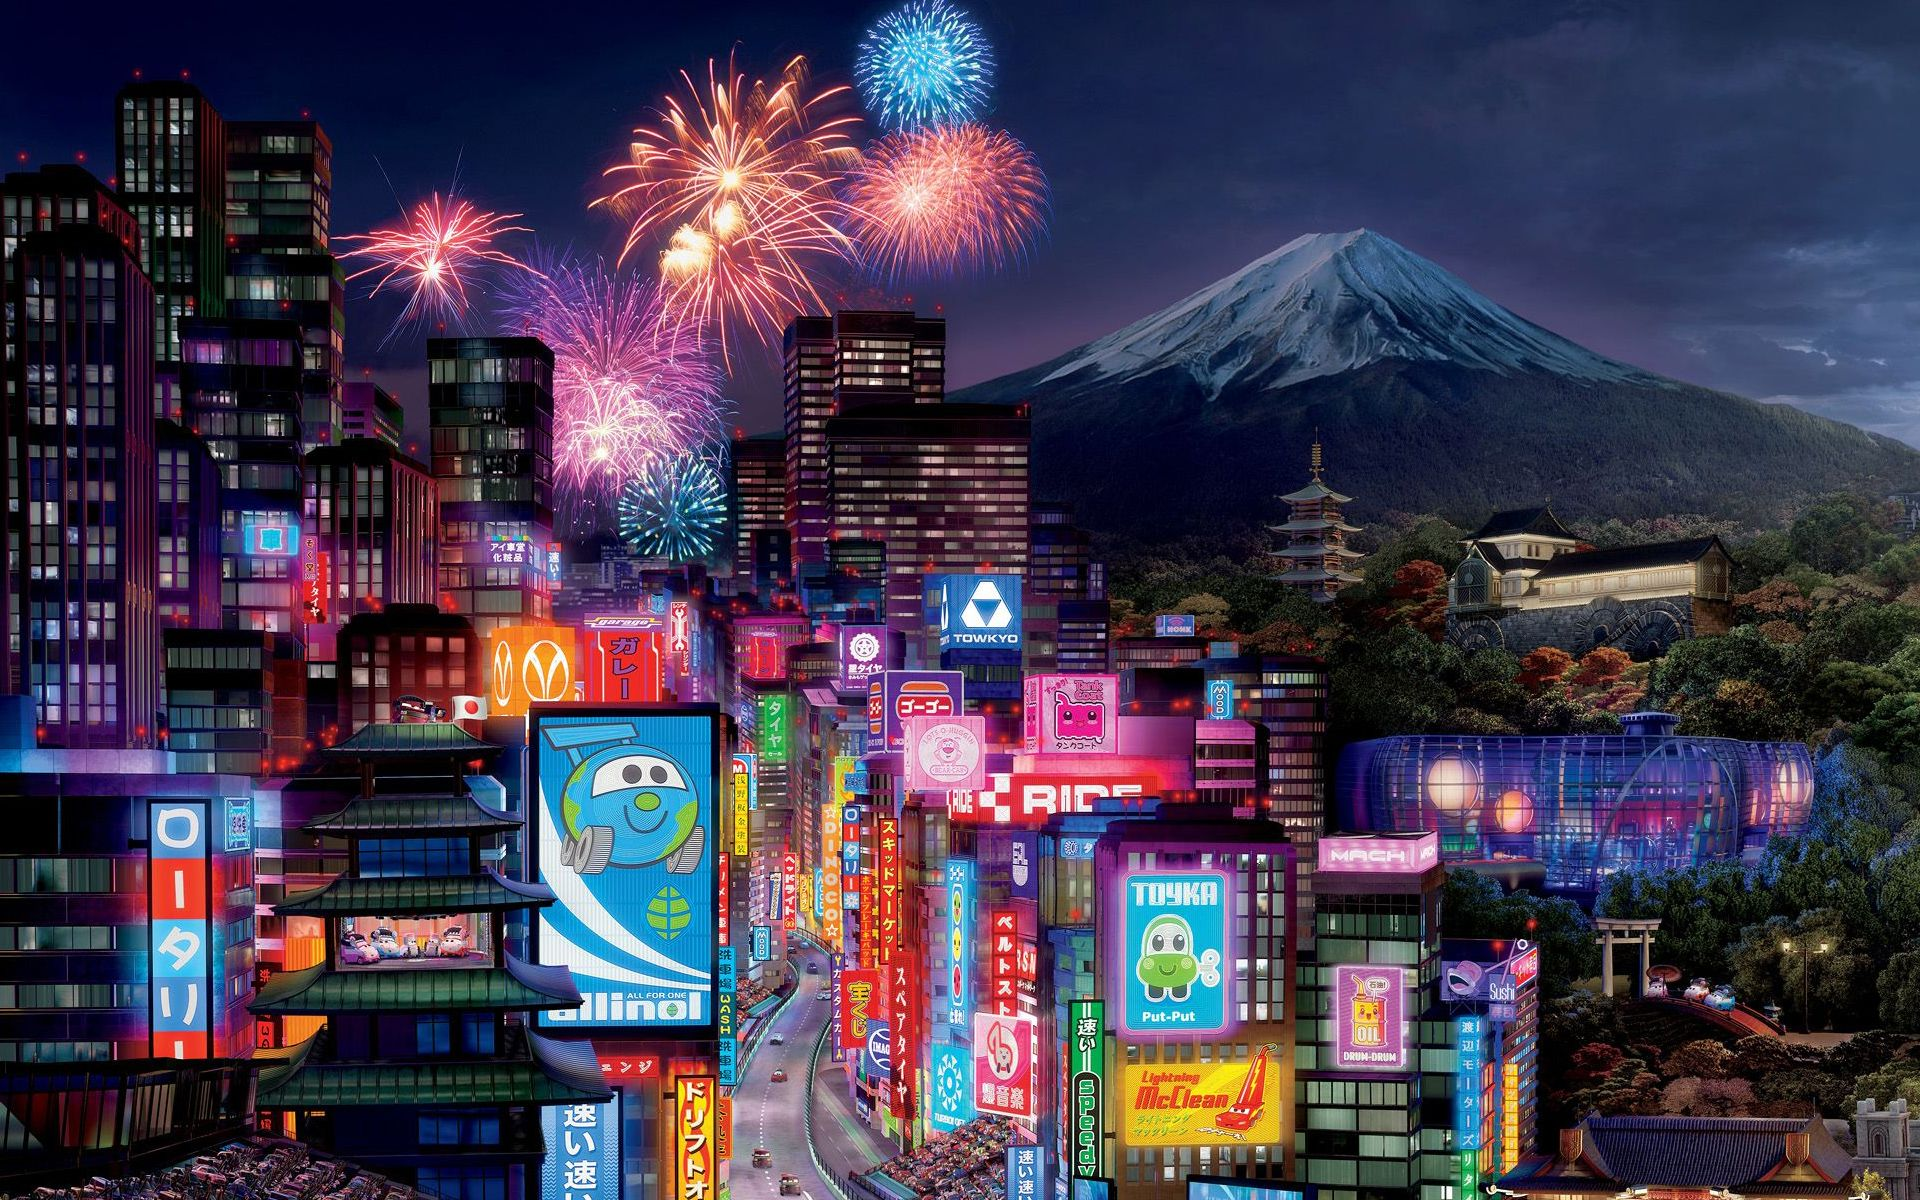 Pin By Delbert Graham On Places I Want To Go Tokyo City Tokyo Skyline Japan Travel